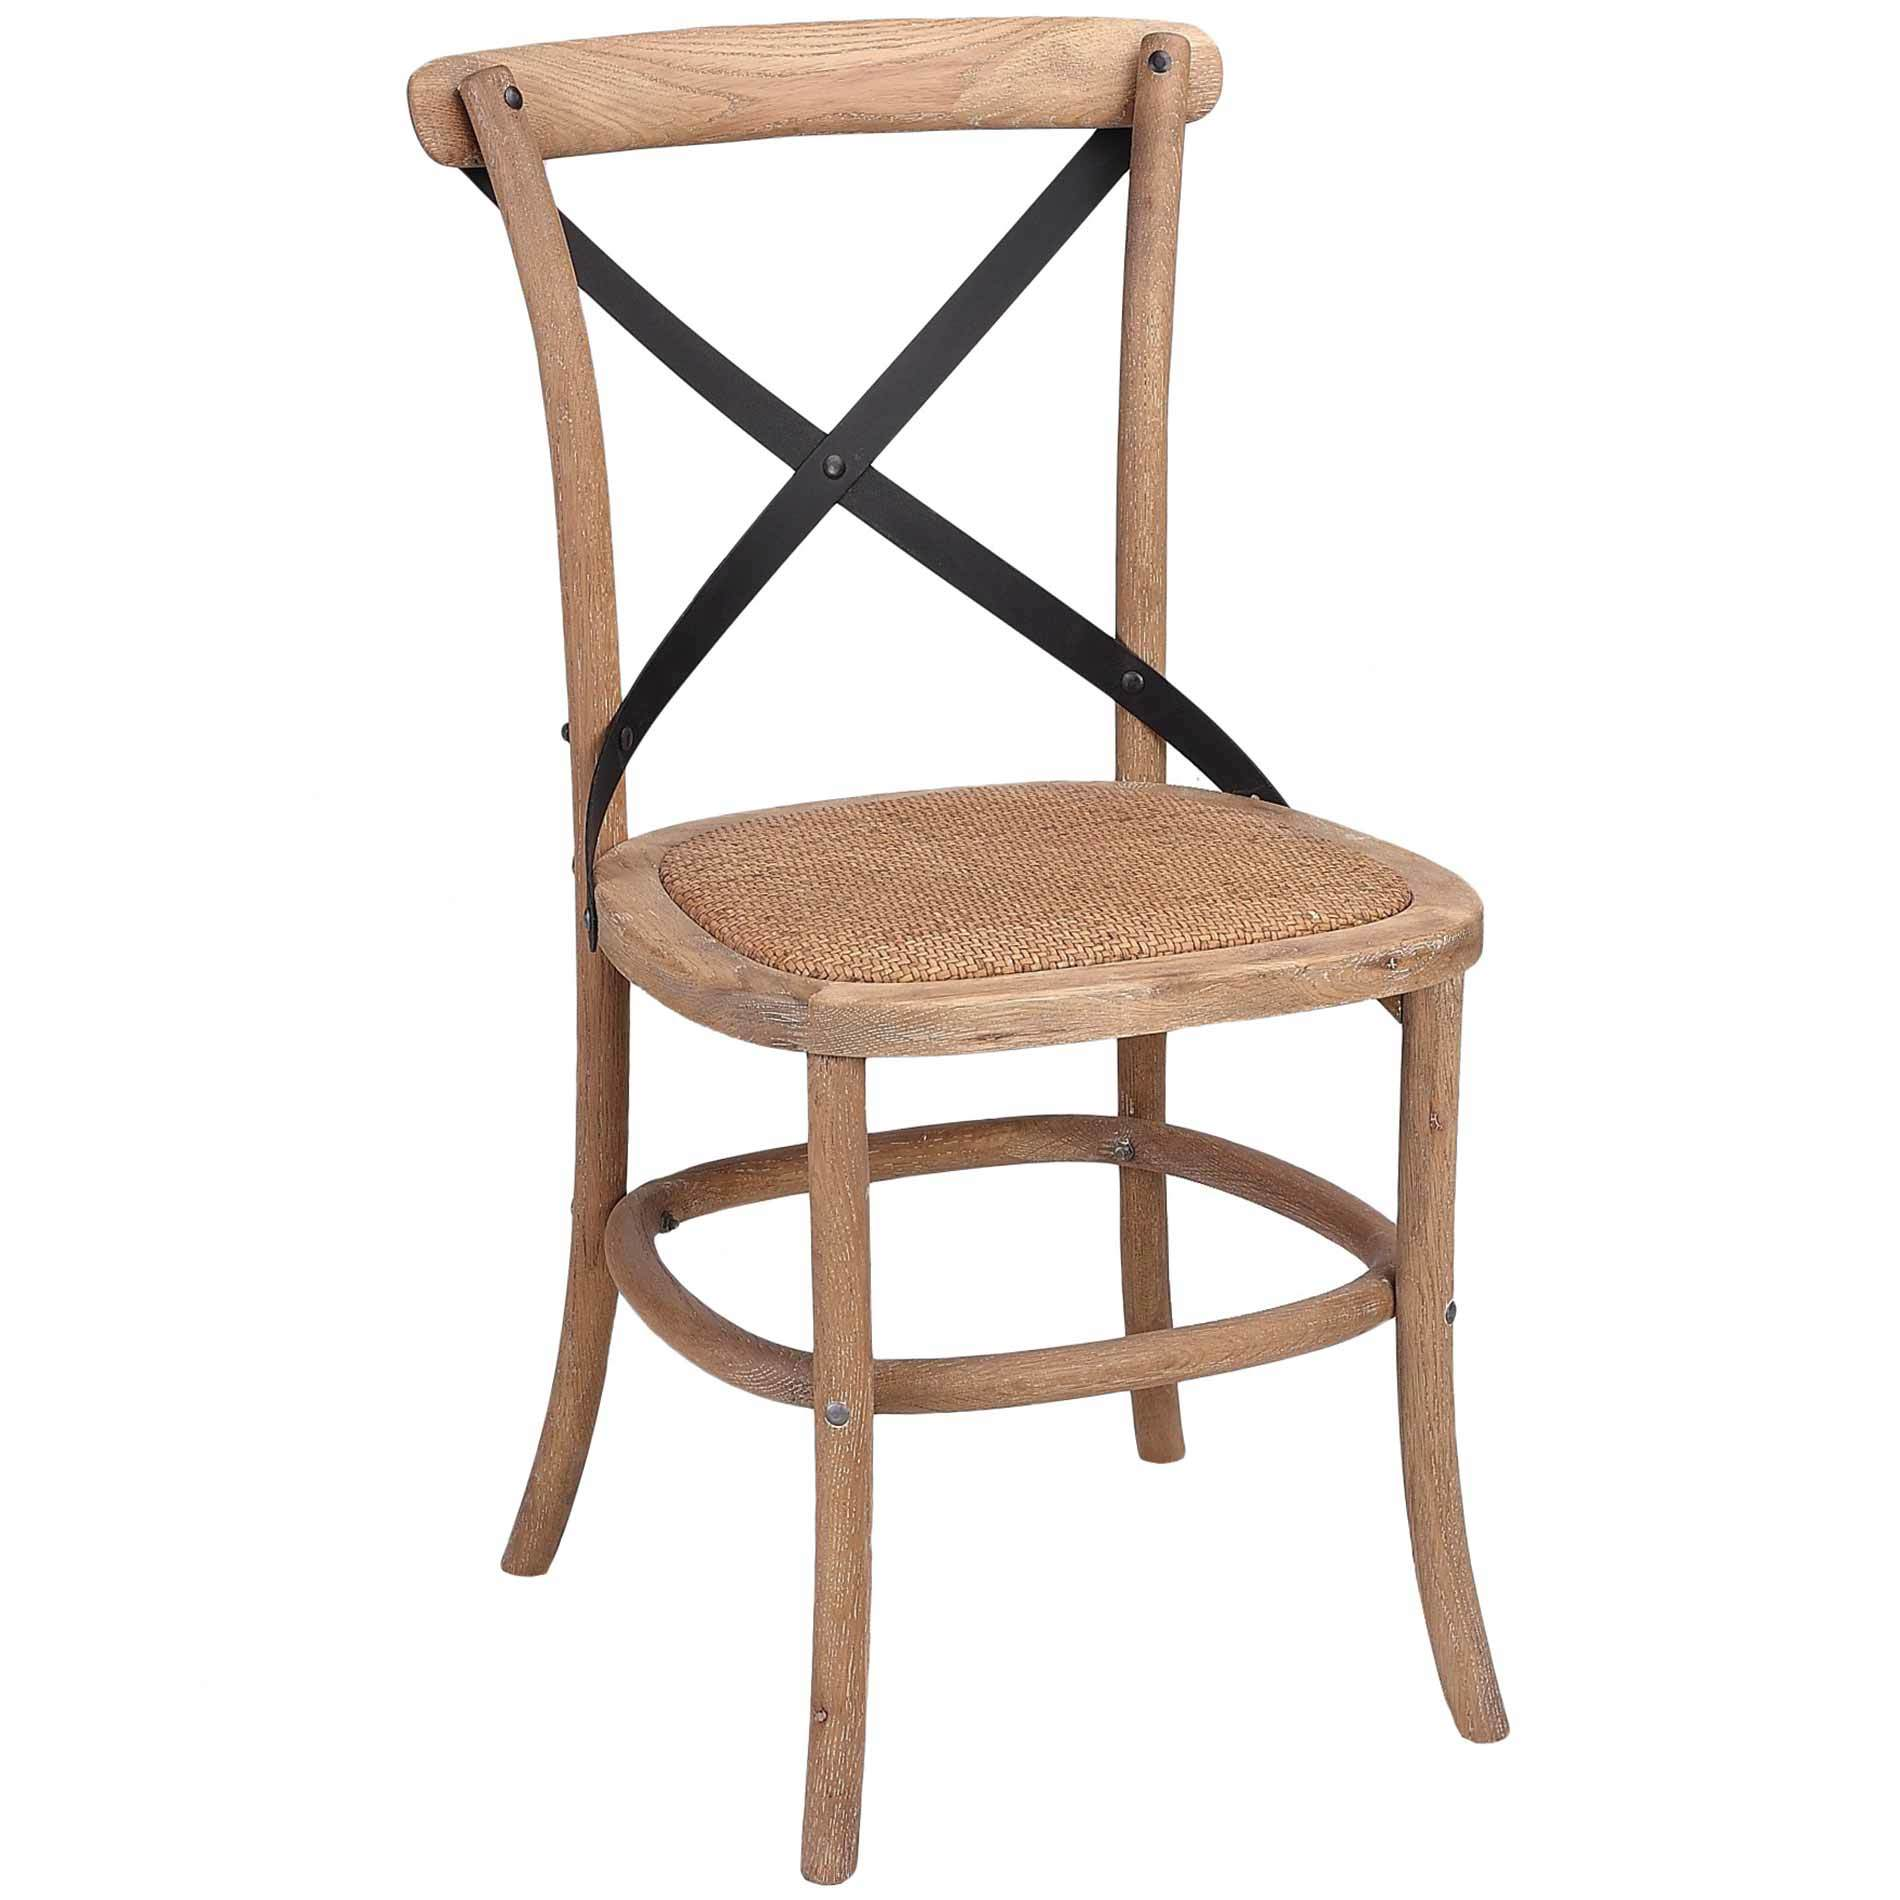 Merveilleux SKU #HOFL1016 French Country Metal Cross Back Dining Chair With Rattan Seat  Is Also Sometimes Listed Under The Following Manufacturer Numbers: HWC008